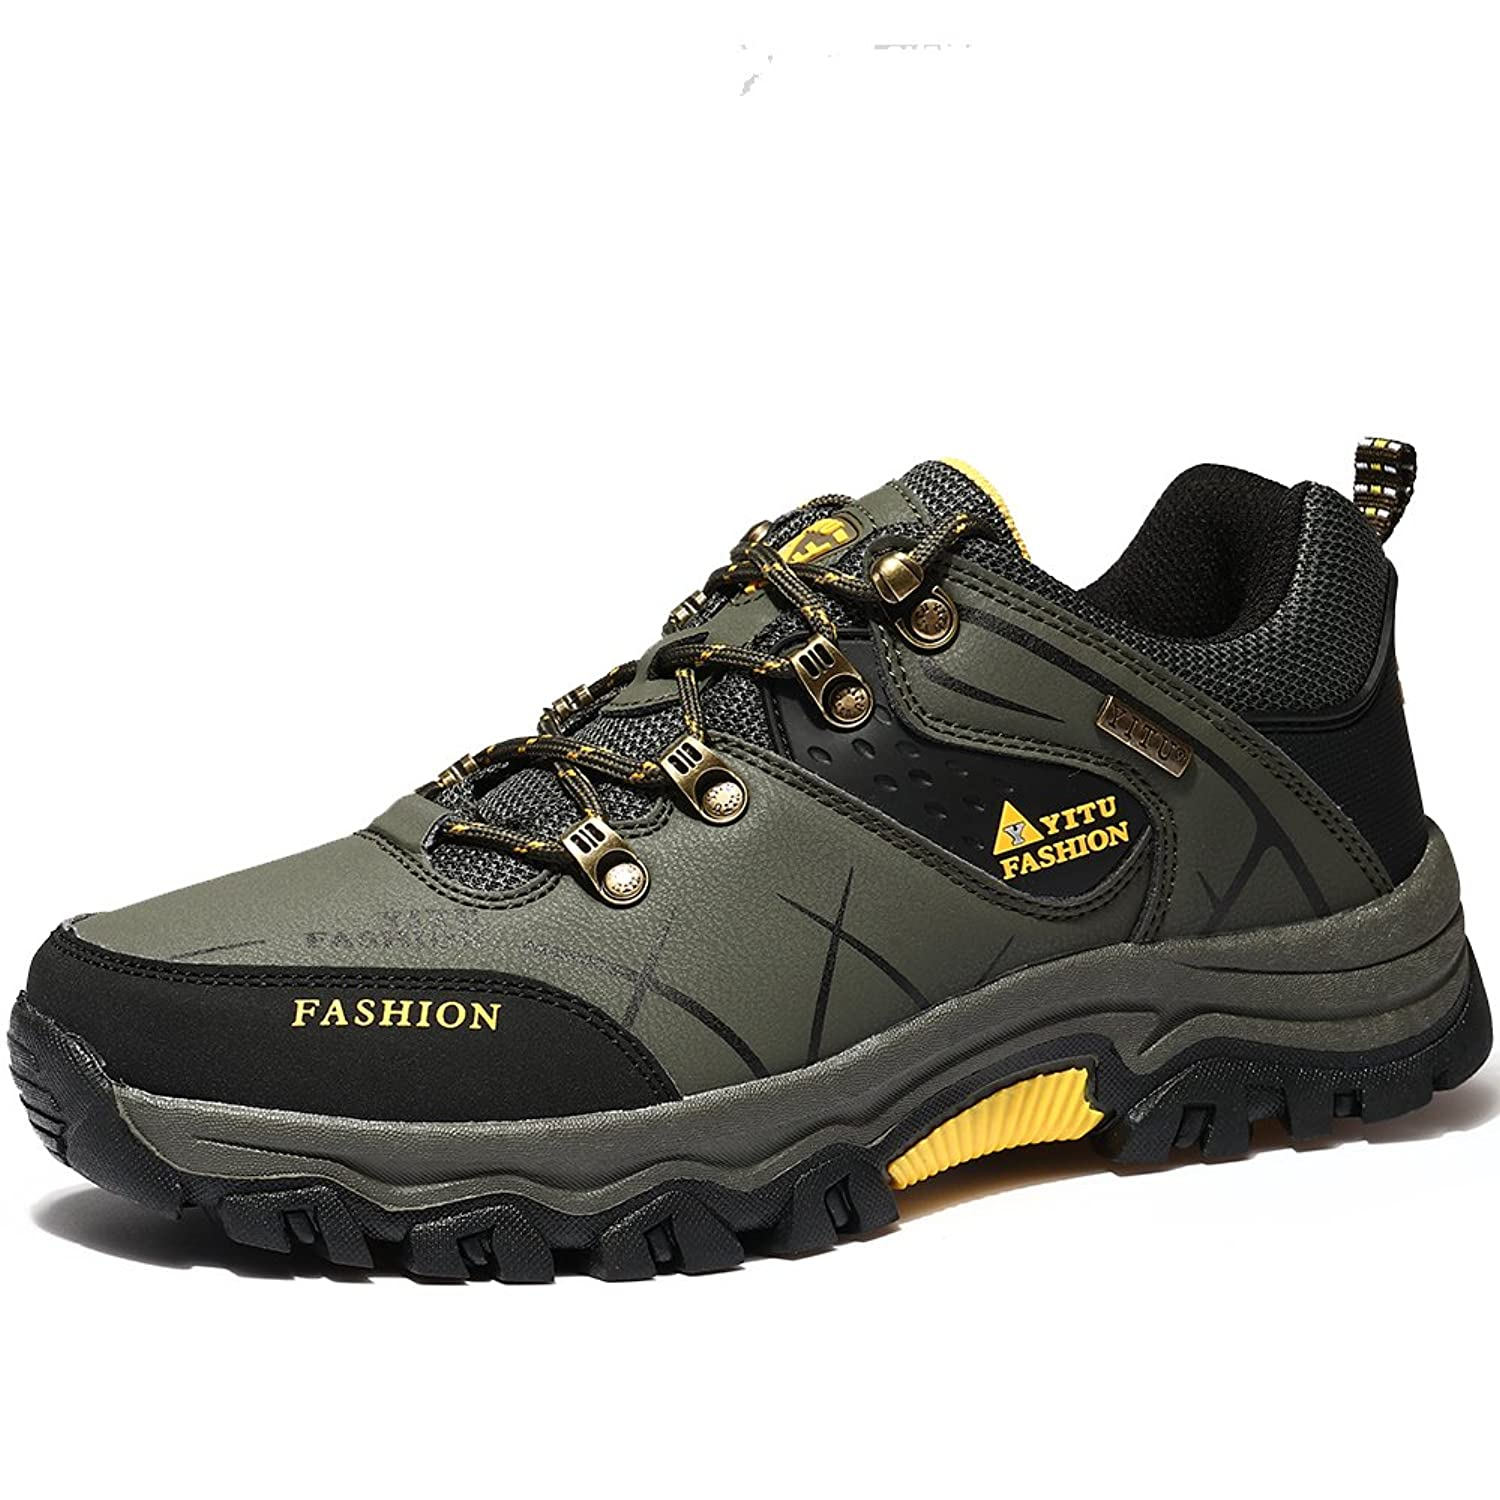 good VILOCY Men's Hiking Boots Trekking Shoes Low Top